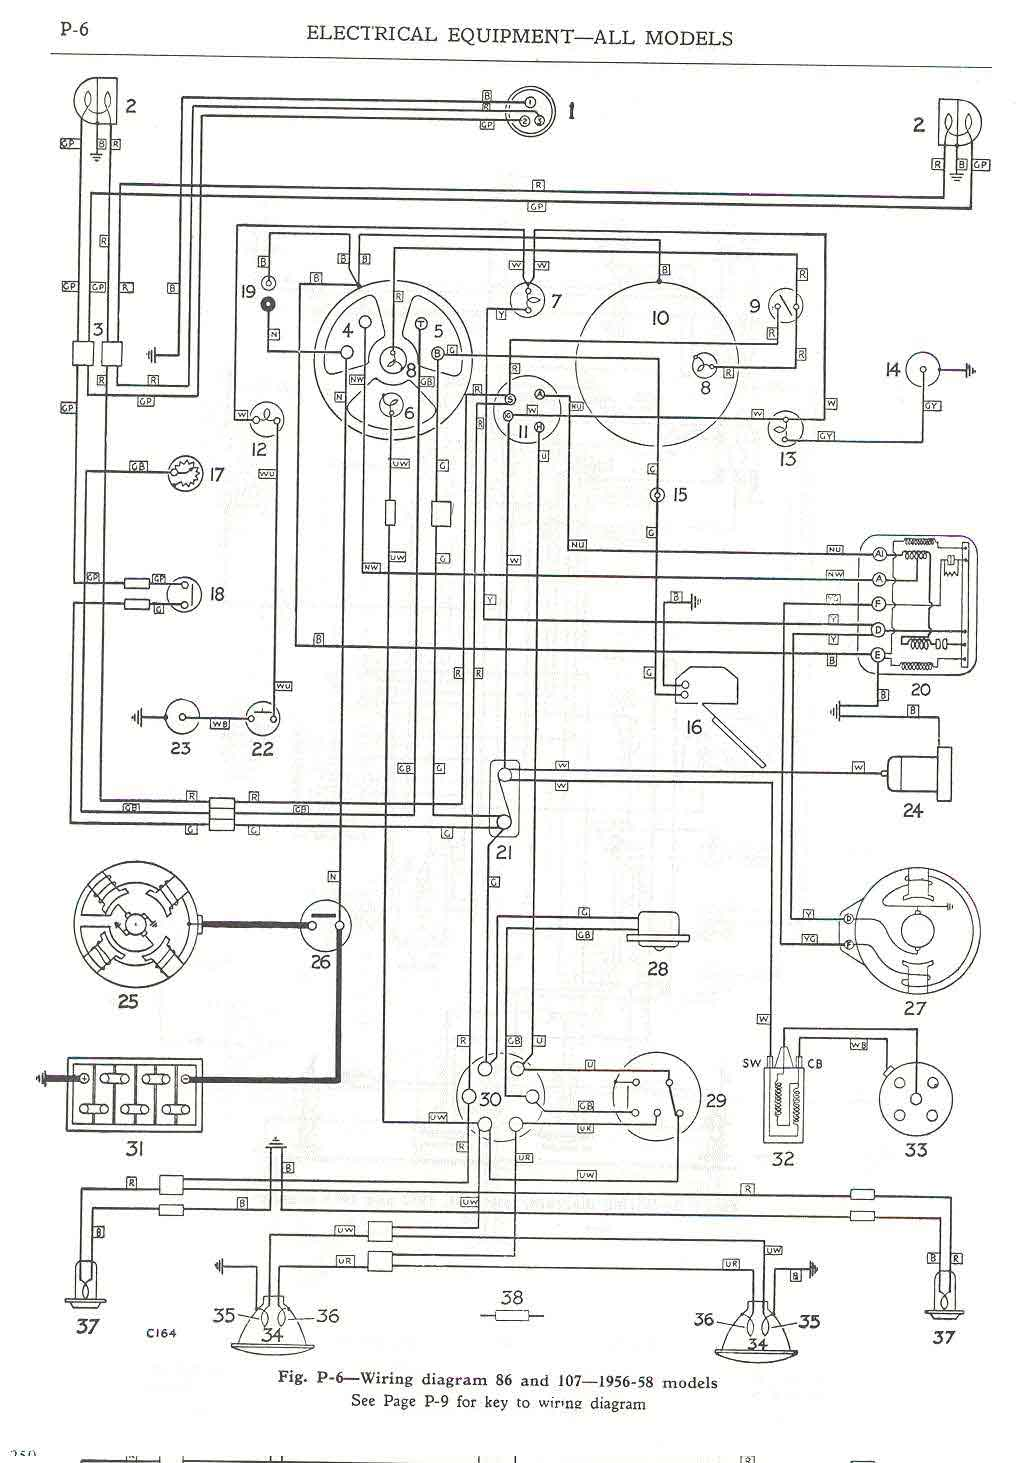 hight resolution of  wiring diagram 86 and 107 1956 58 models